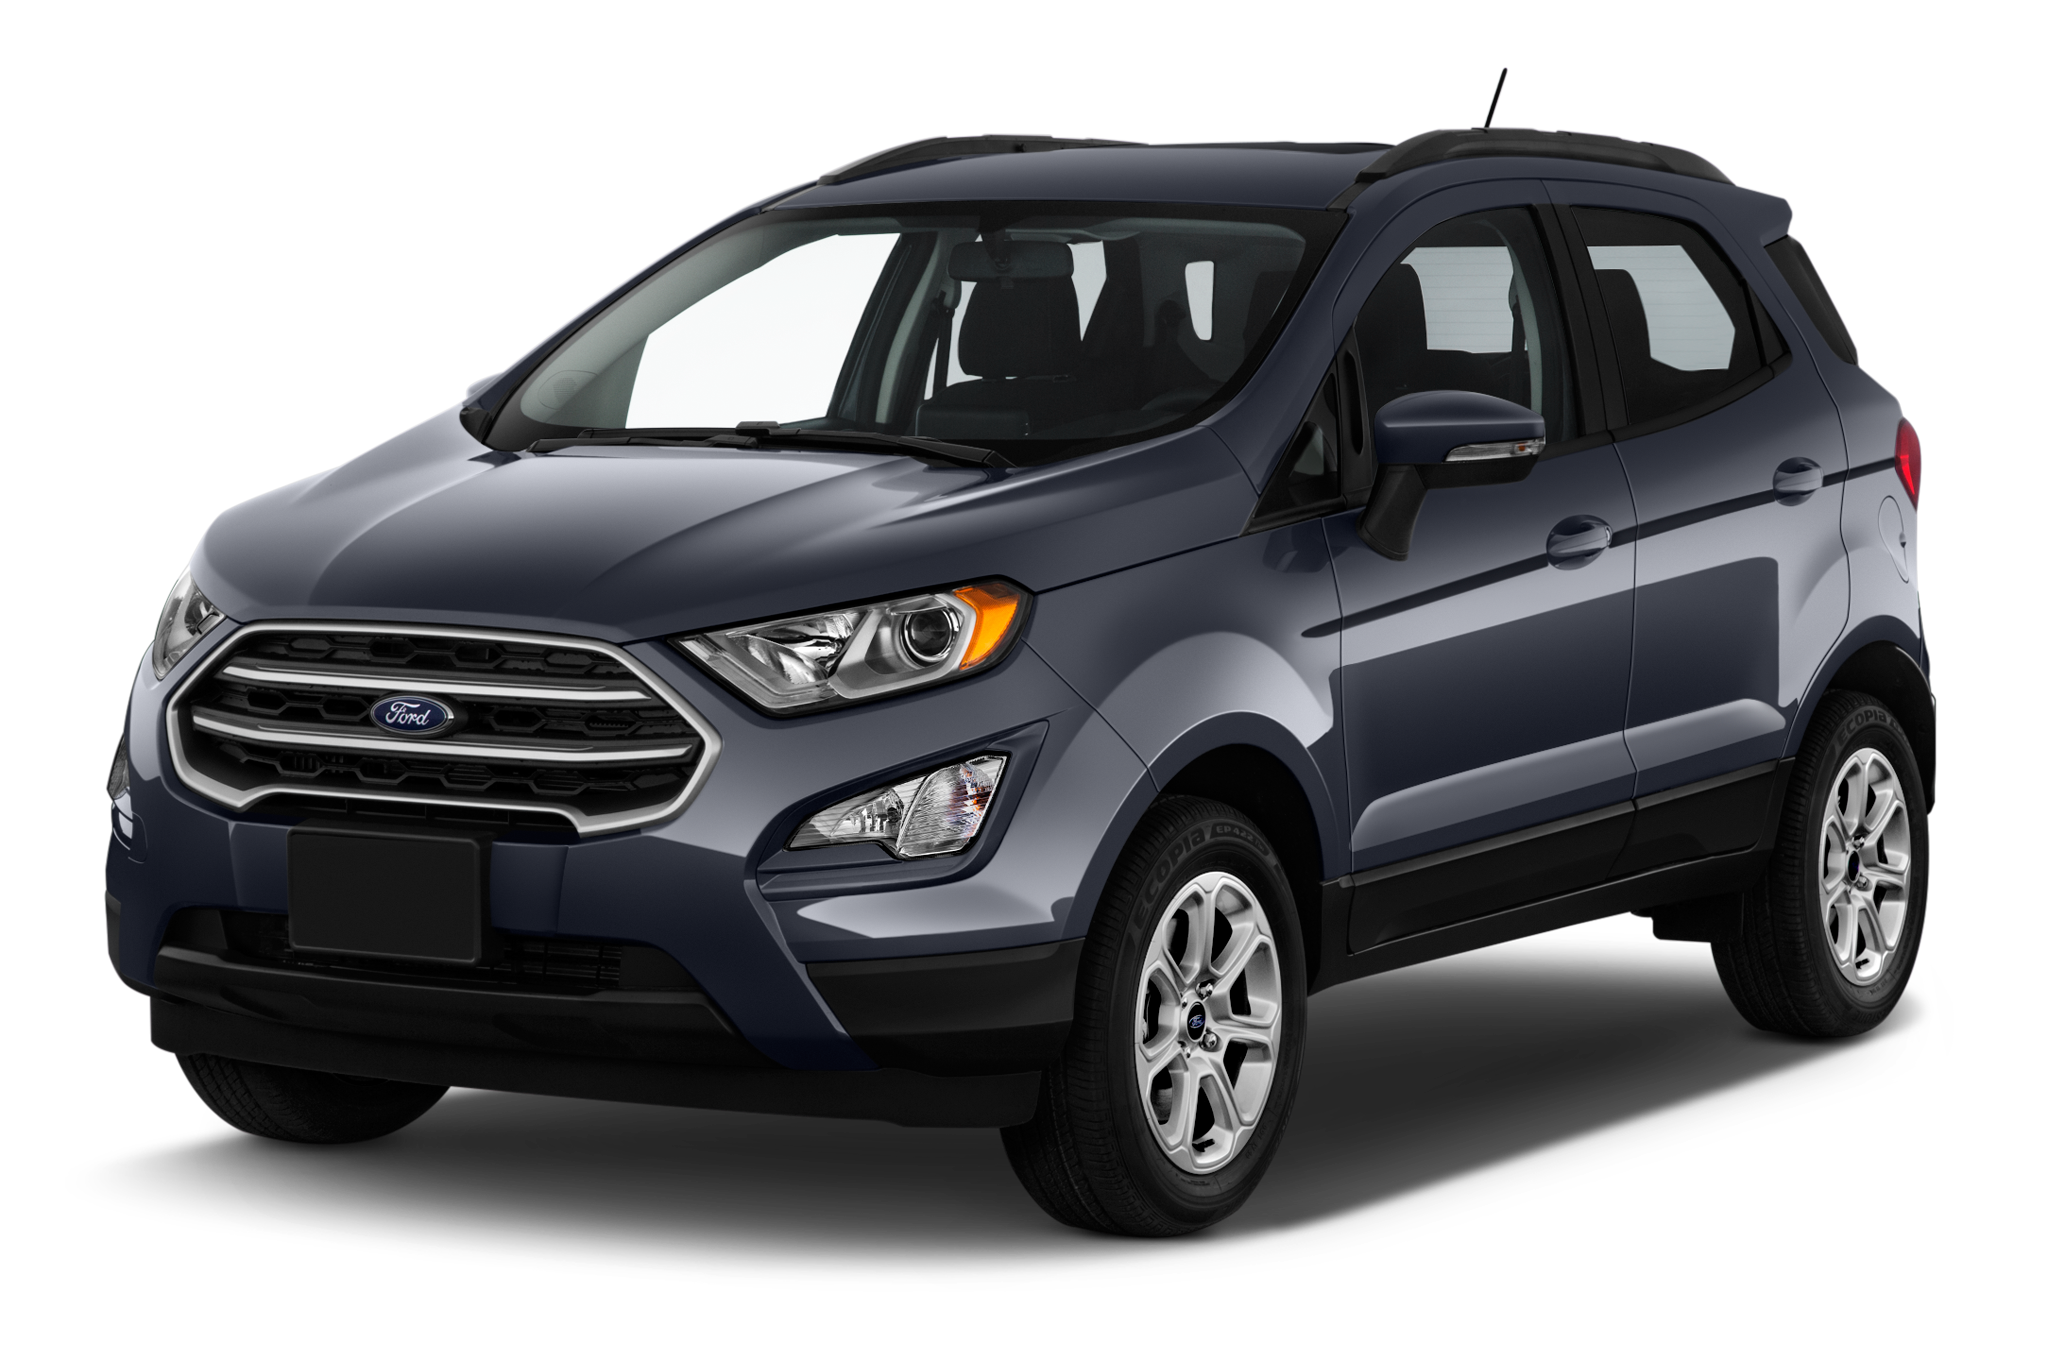 2018 ford ecosport photos and videos msn autos. Black Bedroom Furniture Sets. Home Design Ideas